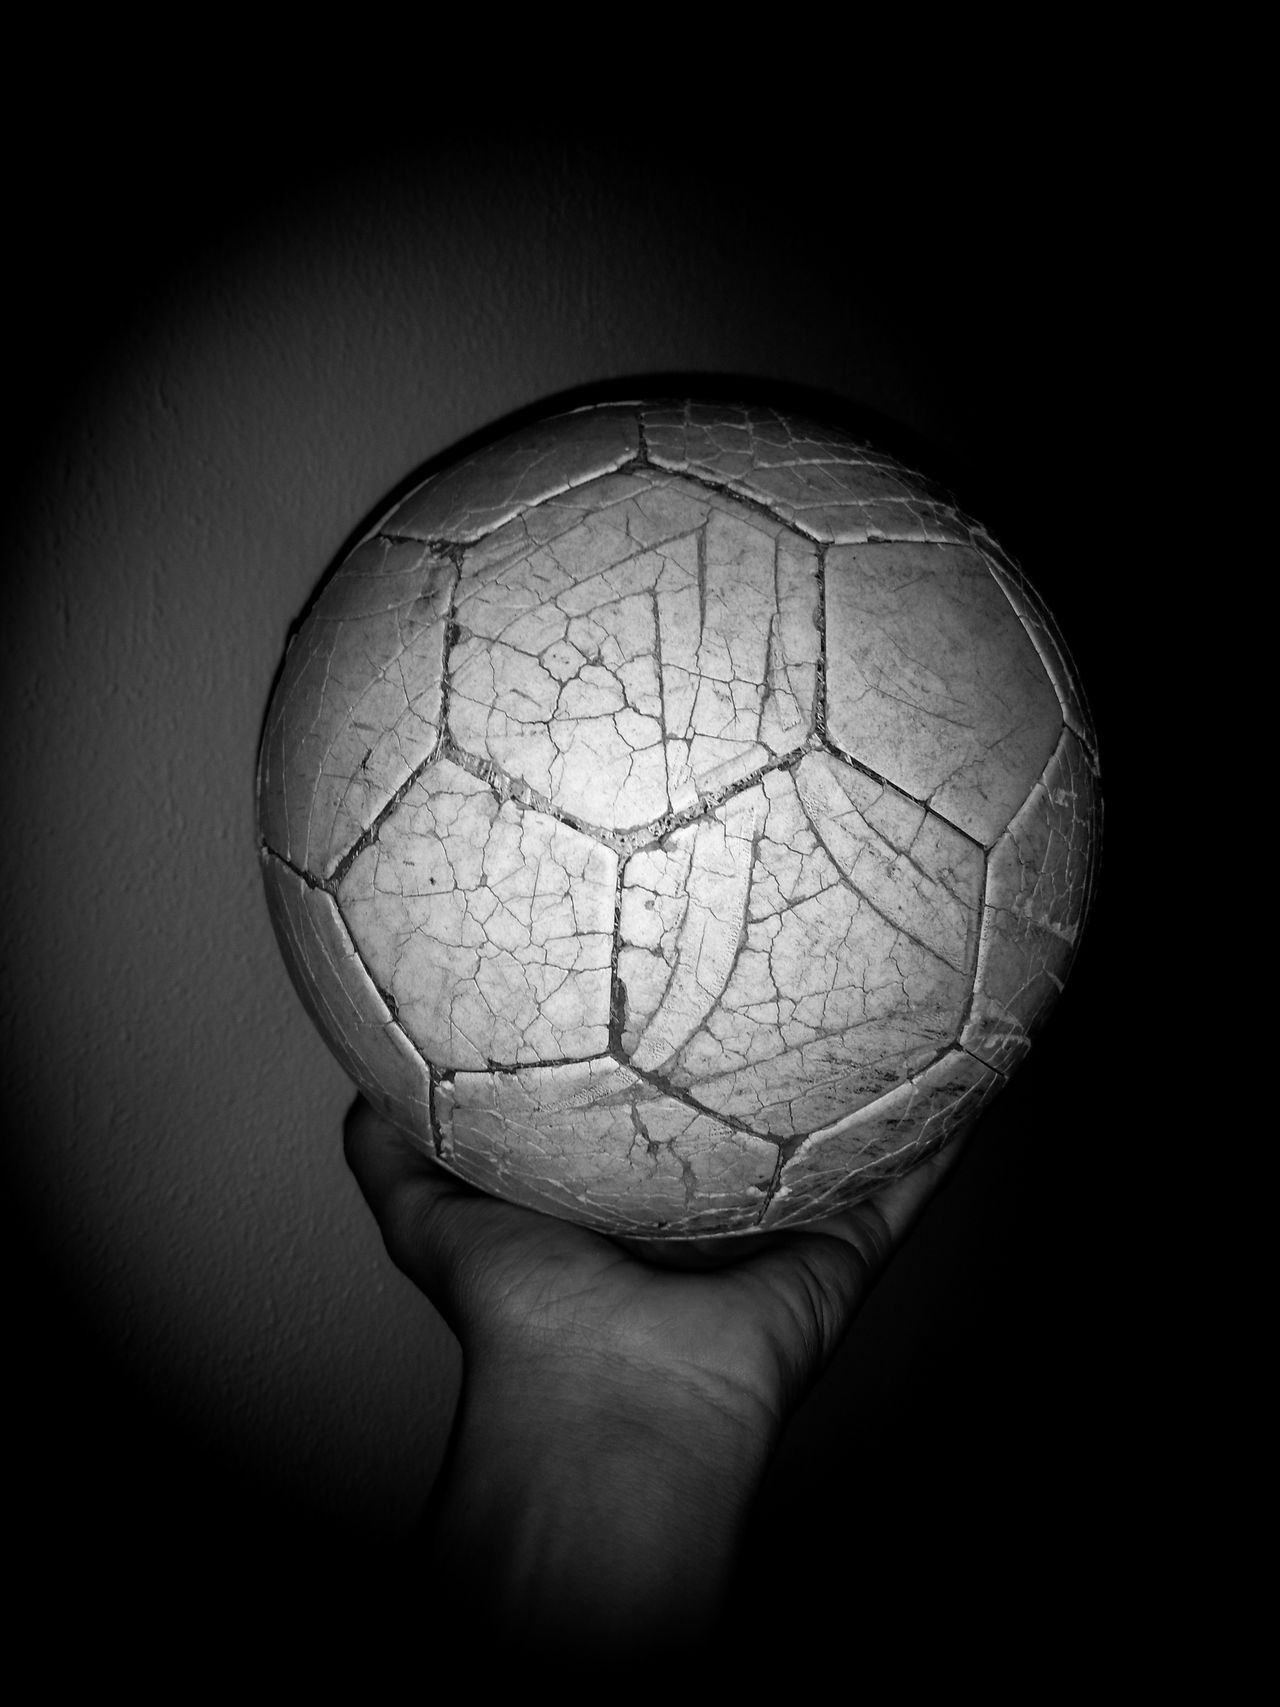 Human Body Part Futbol Pasion Sports Photography Futuristic Architecture Futbol Futbol Time Fotball Fotography Fotball Fever Human Hand One Person Sphere Cracked Holding Shadow Human Arm Textured  Adults Only People Illusion One Man Only Close-up Indoors  Only Men Day